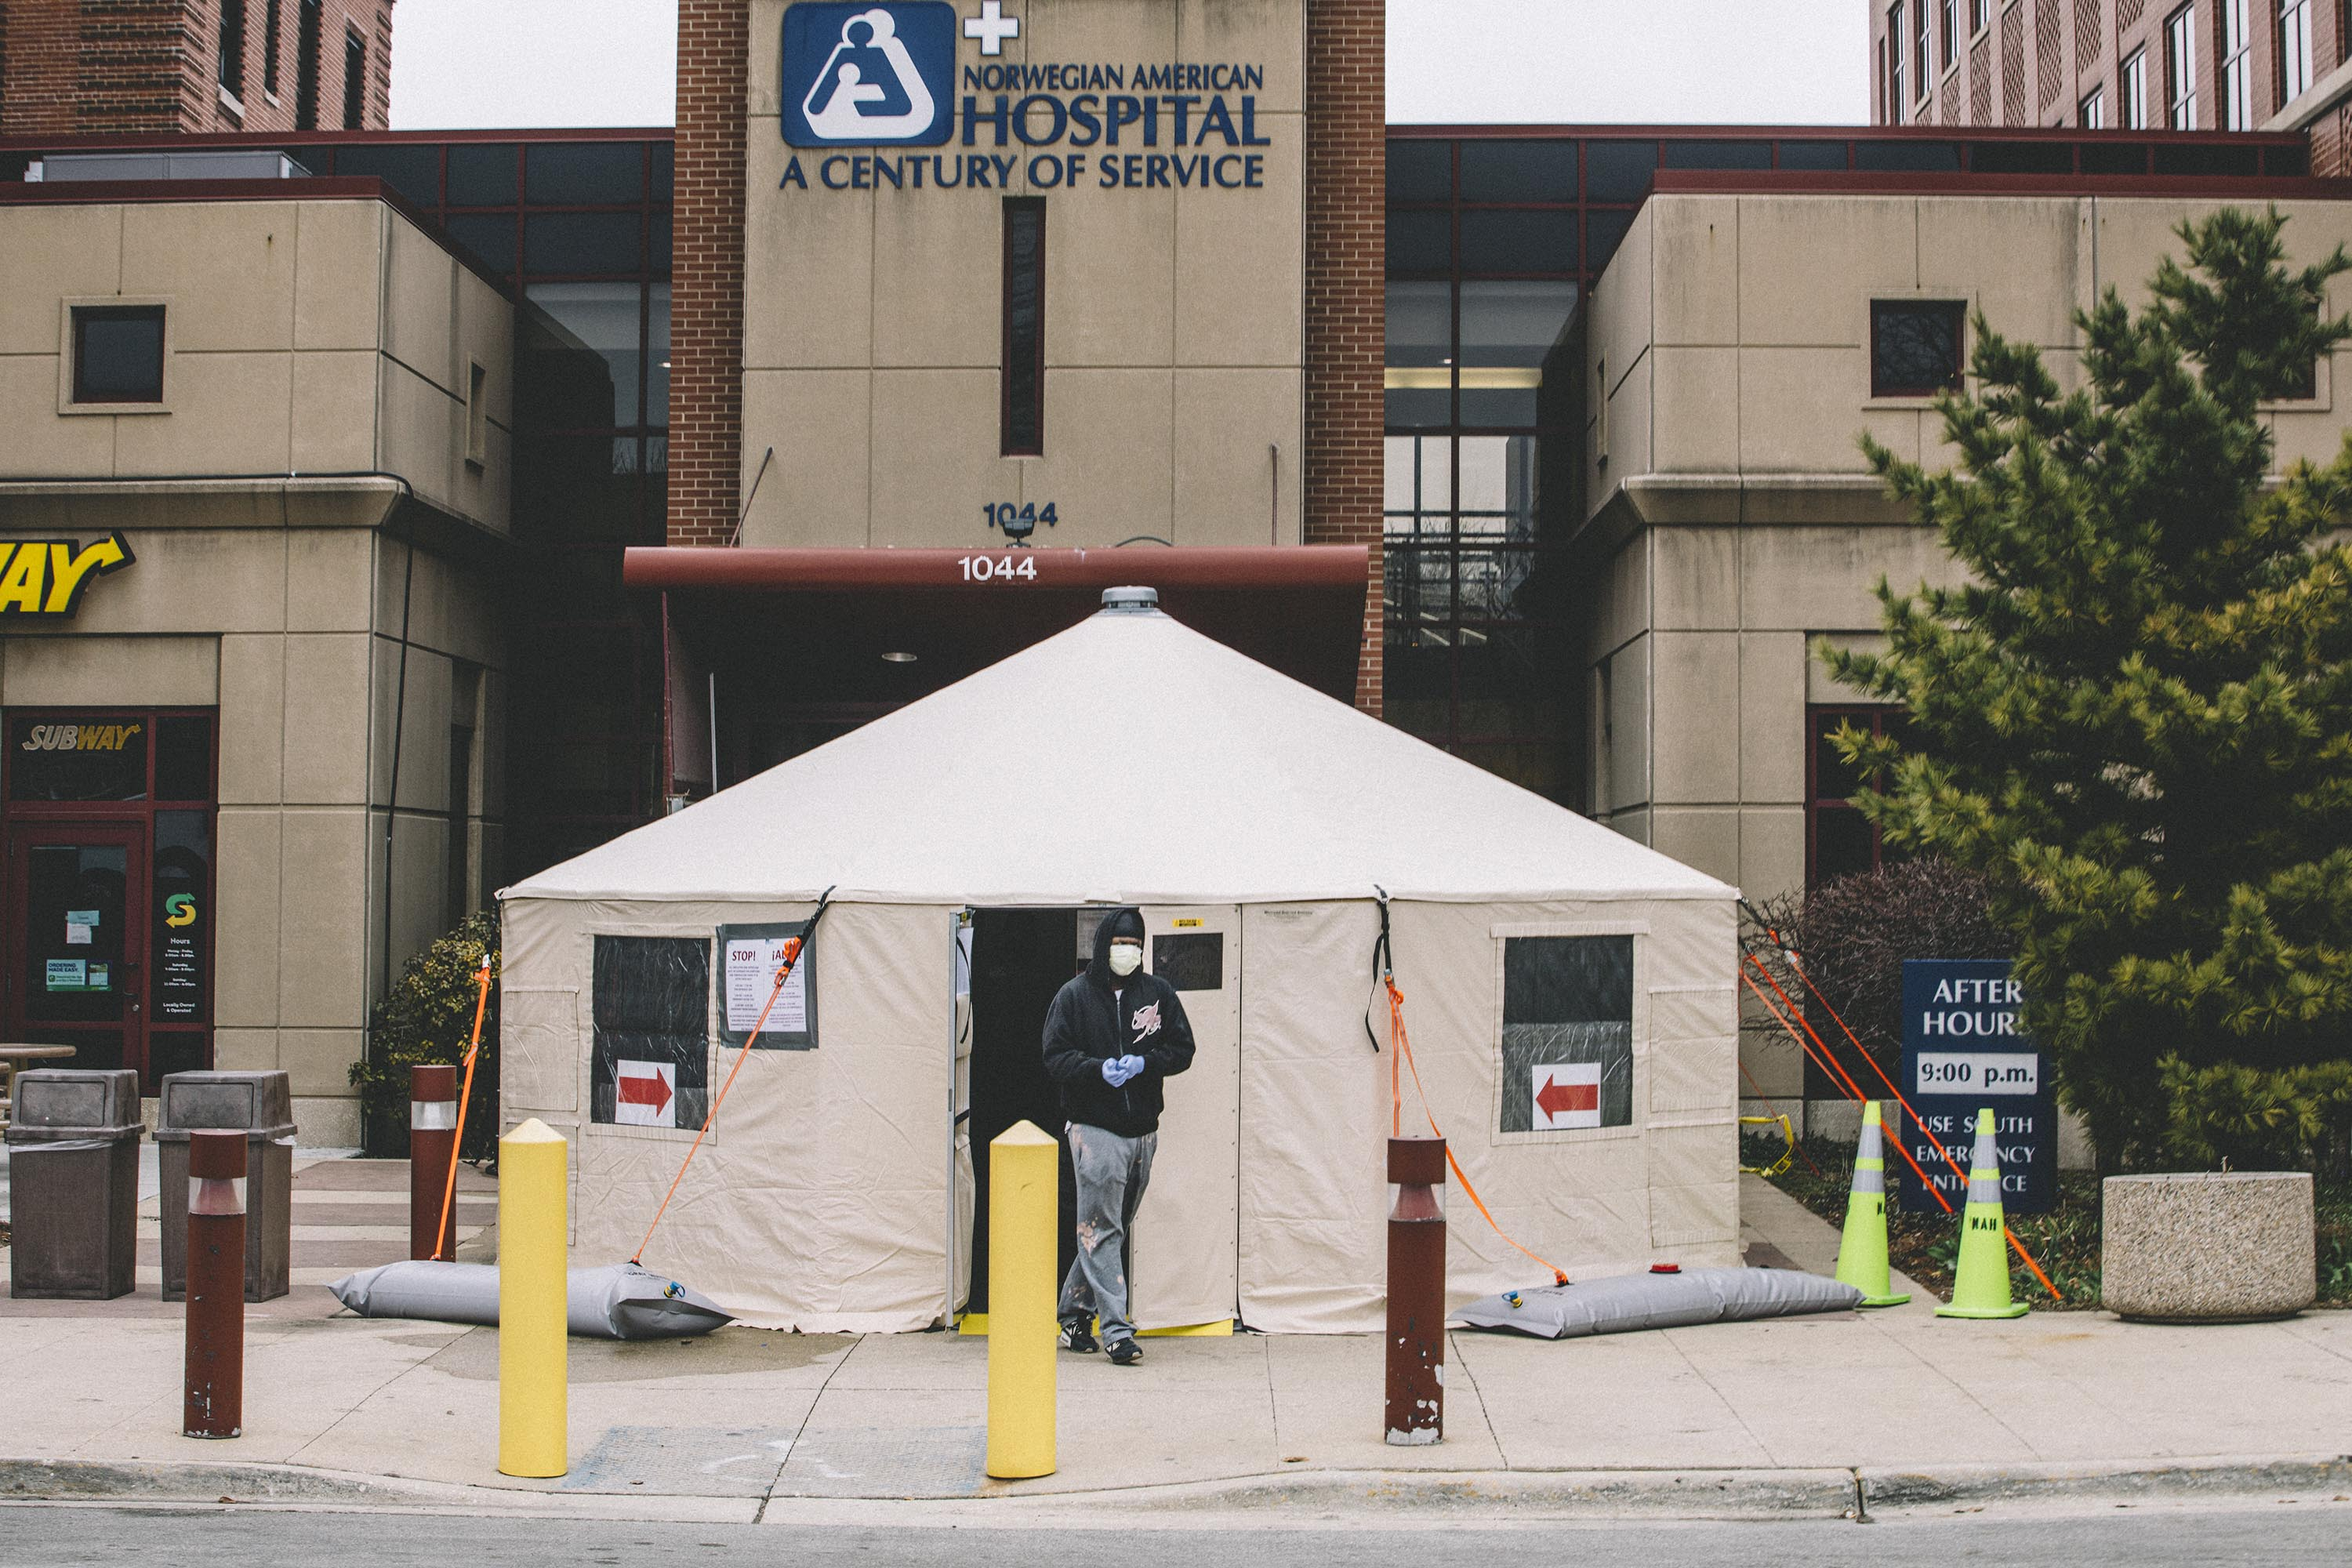 A coronavirus testing tent is pictured outside of Norwegian American Hospital in Chicago, on March 26.